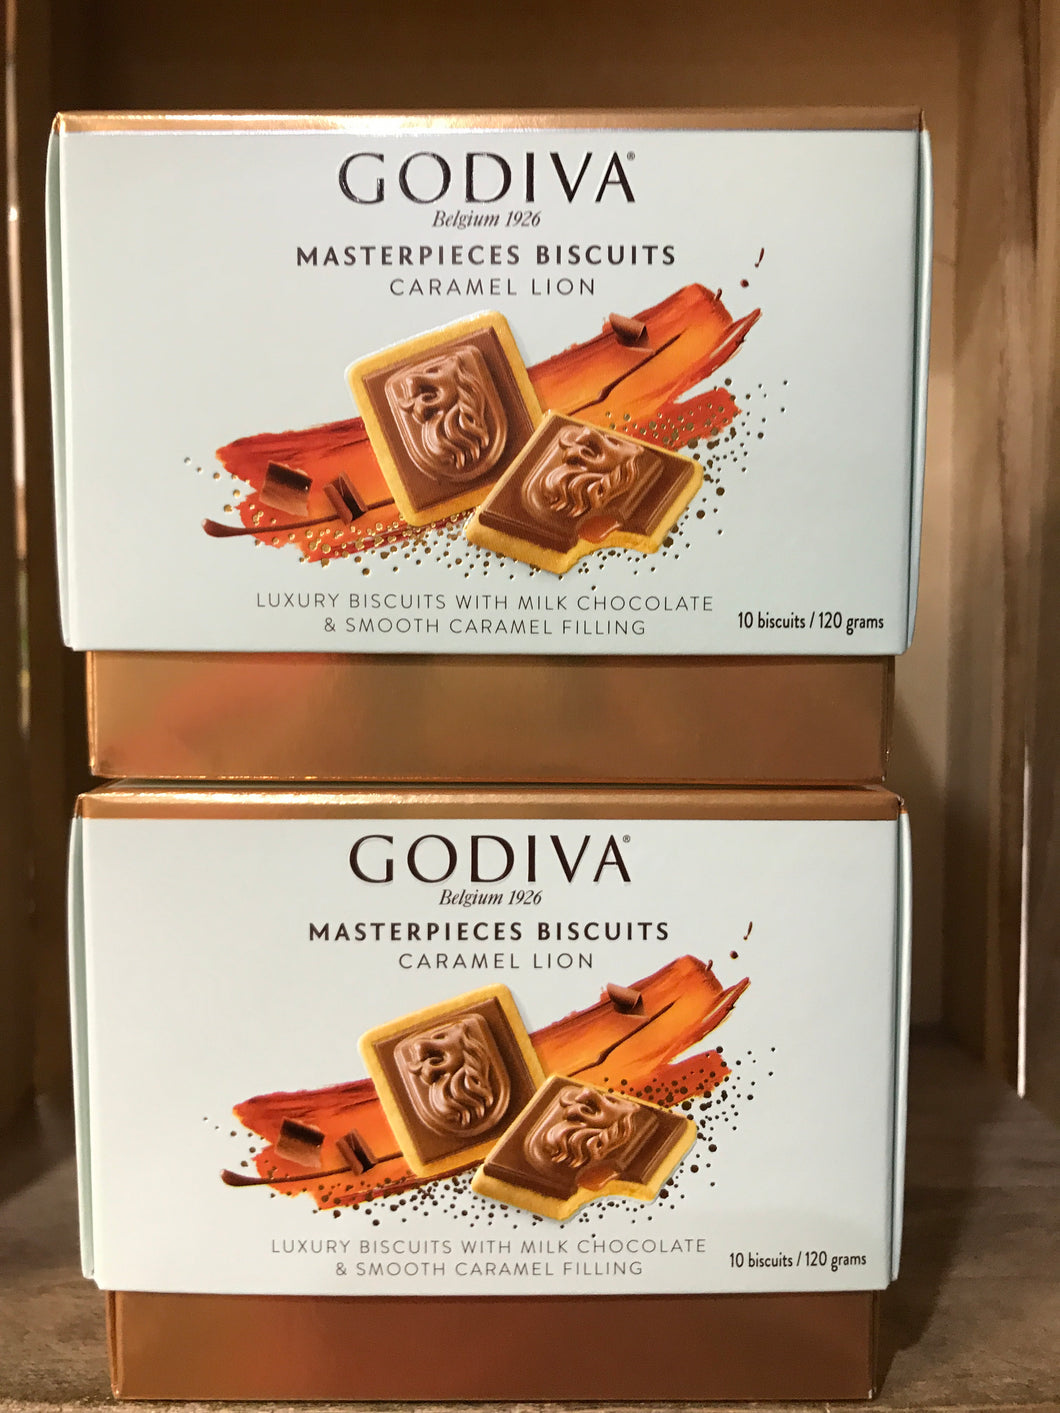 20x Godiva Masterpiece Biscuits Caramel Lion (2 Box's of 10 Biscuits)